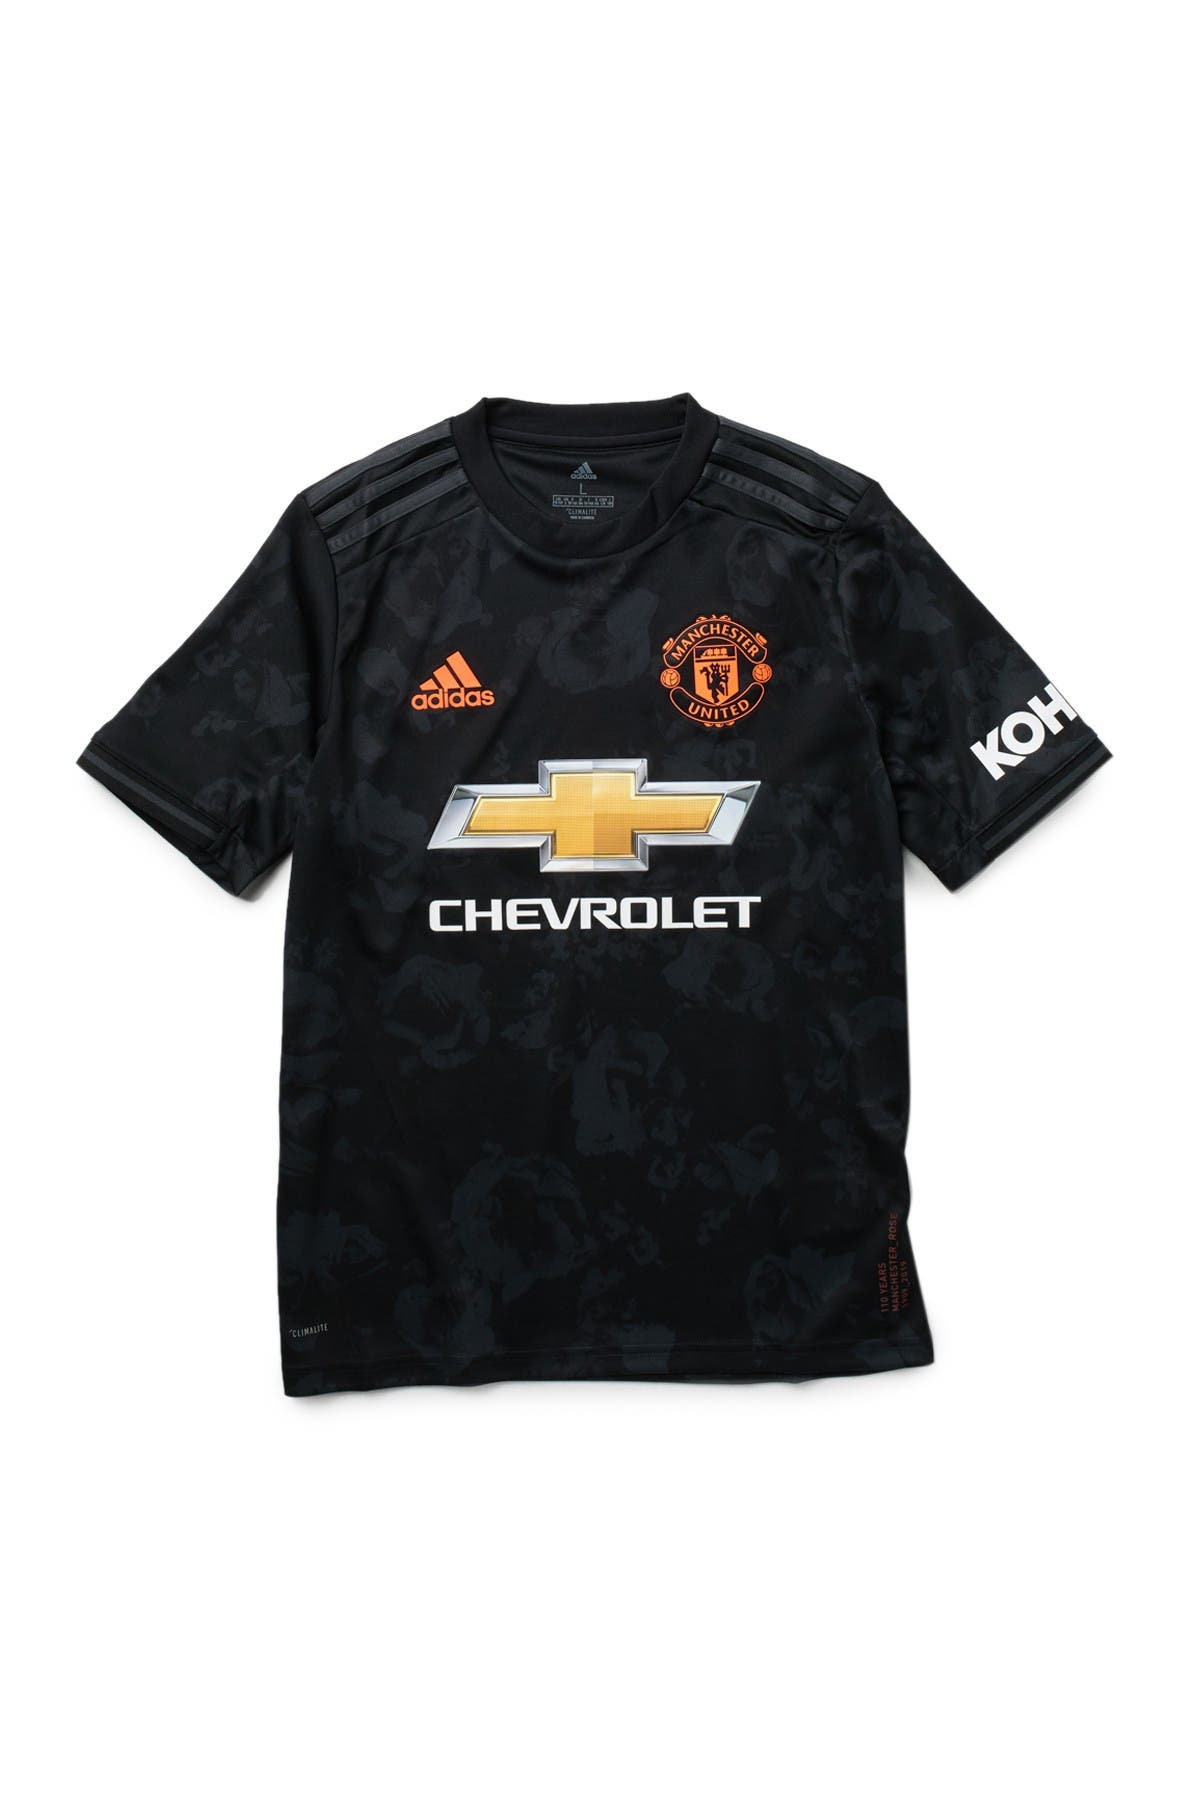 Image of ADIDAS ORIGINALS Manchester United Football Club 3 Soccer Jersey